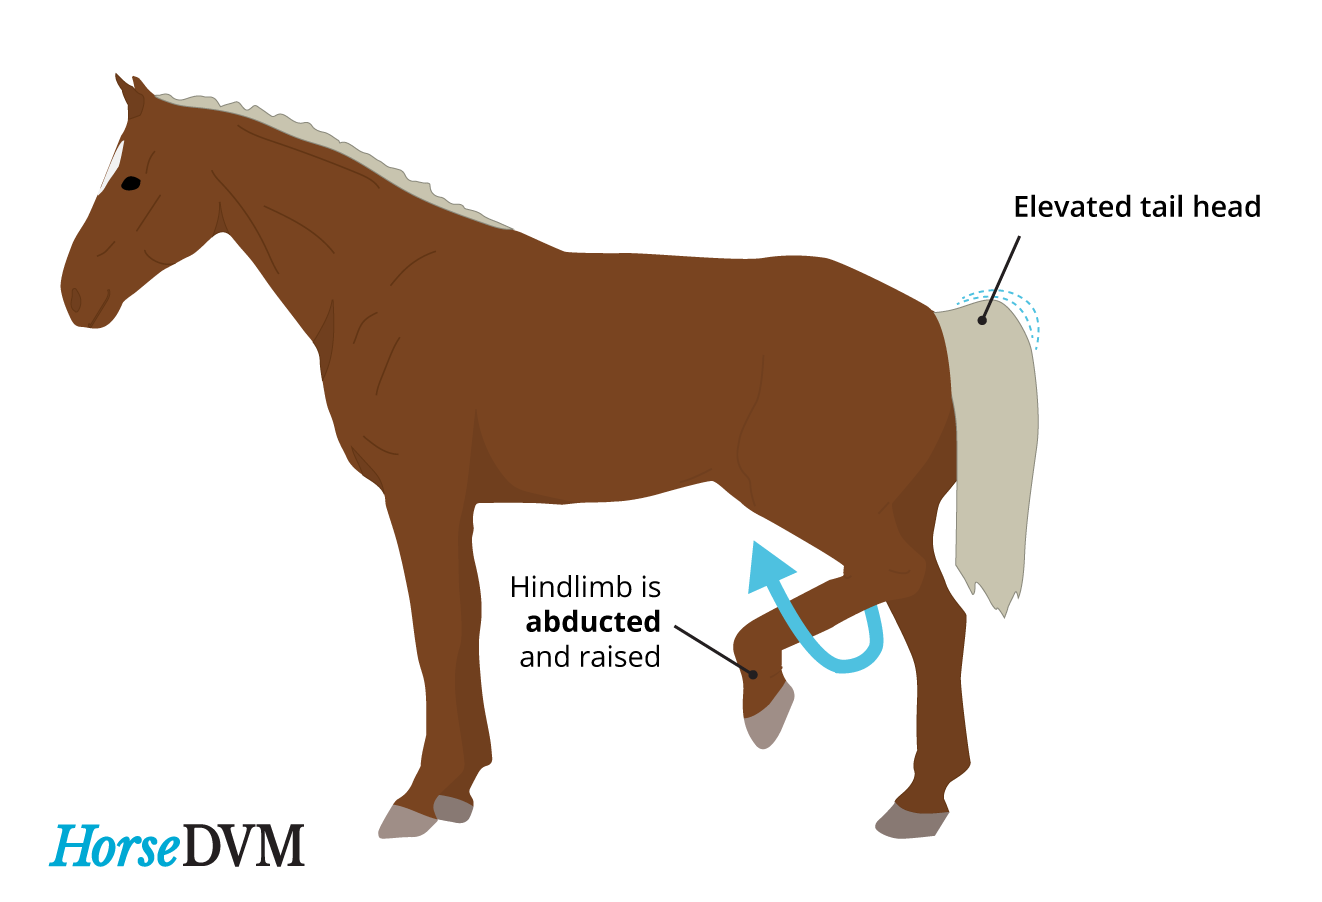 Image of a typical horse with shivers